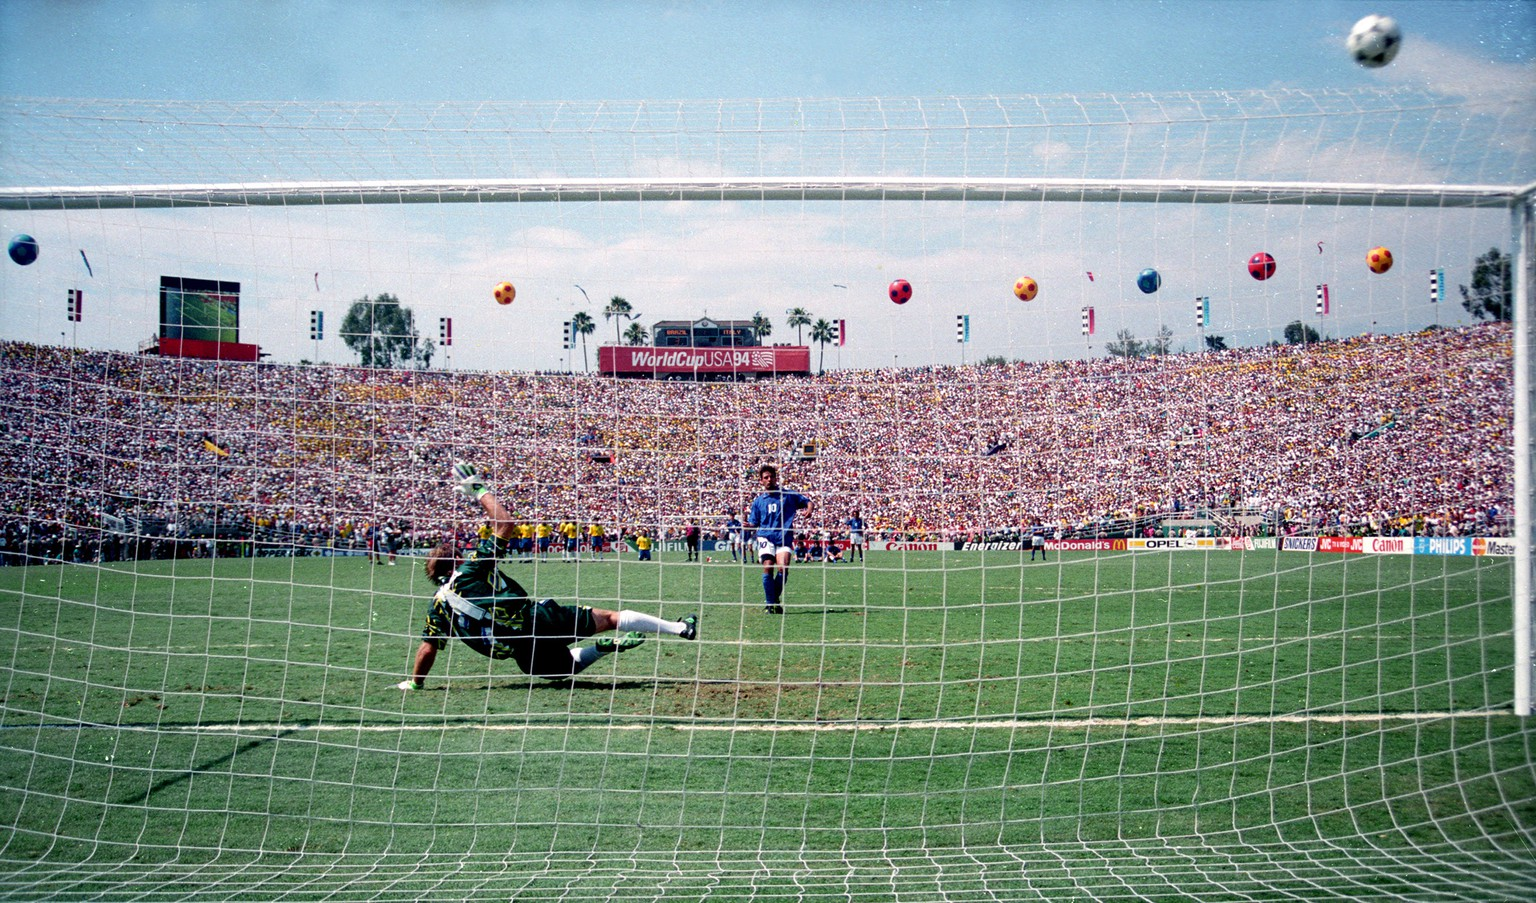 ITALY'S BAGGIO SENDS BALL OVER NET AS BRAZILIAN GOALKEEPER TAFARREL DIVES WRONG WAY DURING SHOOTOUT AT WORLD CUP IN PASADENA.  Italy's Roberto Baggio sends the ball over the net (R) as Brazilian goalkeeper Claudio Tafarrel dives the wrong way during a shootout to decide the World Cup in Pasadena, California, July 17, 1994. Brazil won its record fourth World Cup 3-2 on penalty kicks, the first time ever the World Cup final was decided in a penalty shootout. SCANNED FROM NEGATIVE REUTERS/Gary Hershorn - RTRUGAR